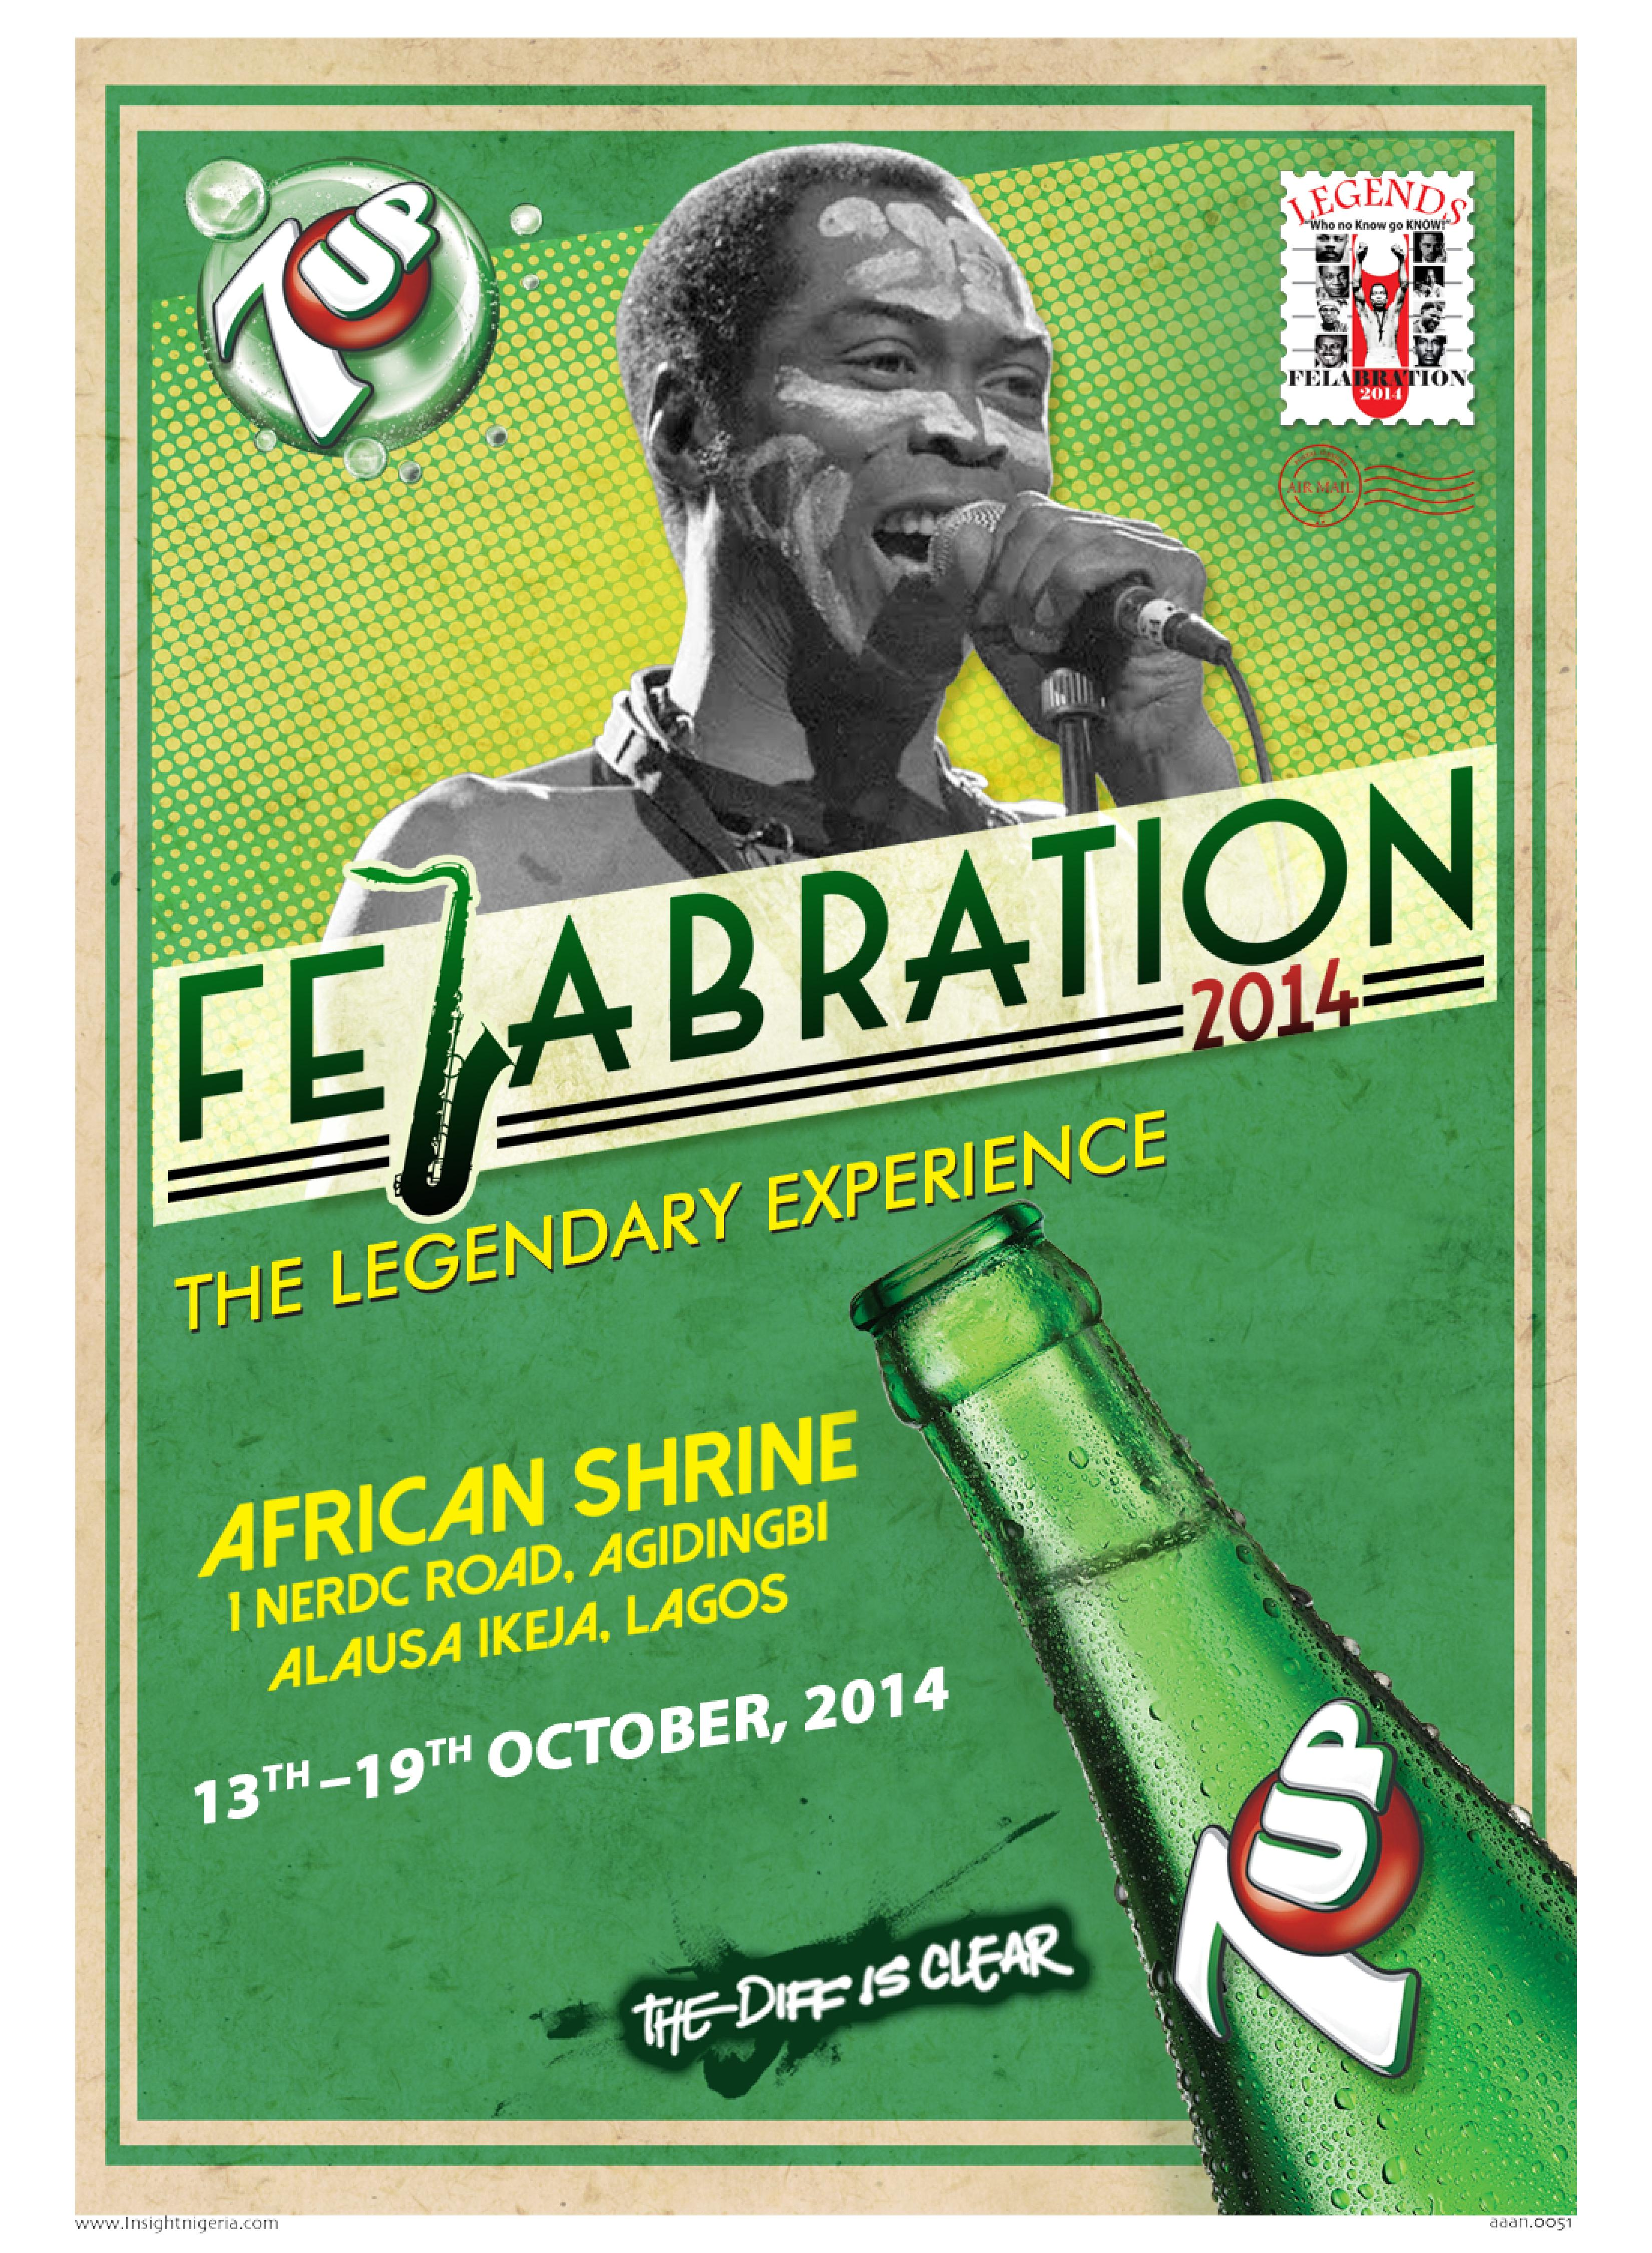 Felabration pressAd REV load-page-001